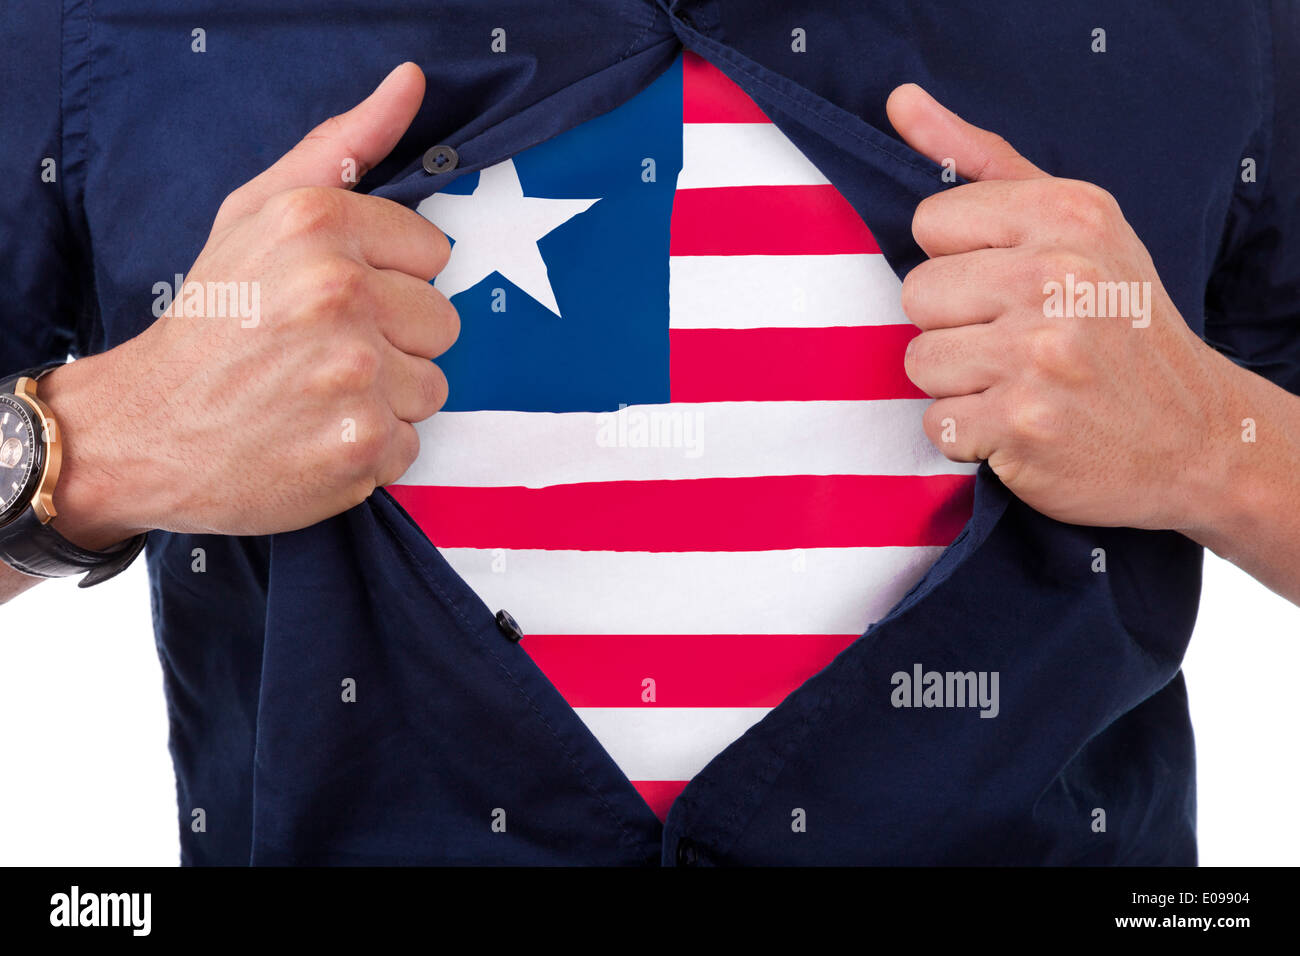 Young sport fan opening his shirt and showing the flag his country Liberia - Liberian flag - Stock Image